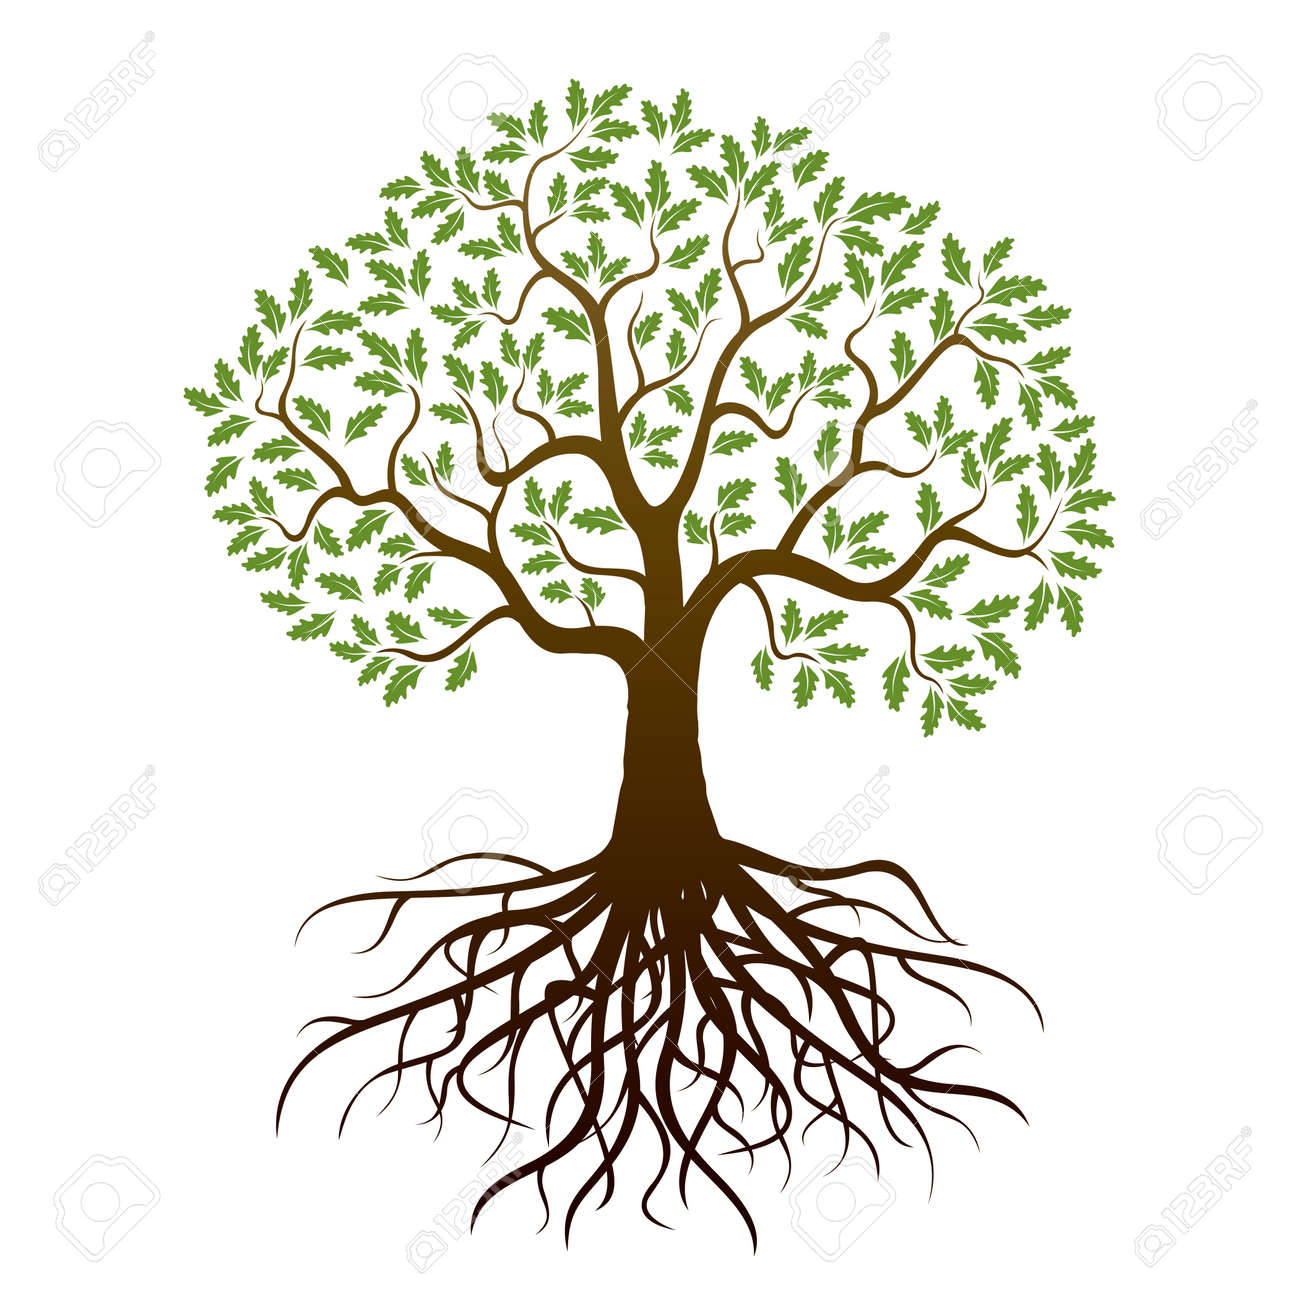 14 941 tree with roots cliparts stock vector and royalty free tree rh 123rf com tree with roots silhouette clip art tree with roots clip art free